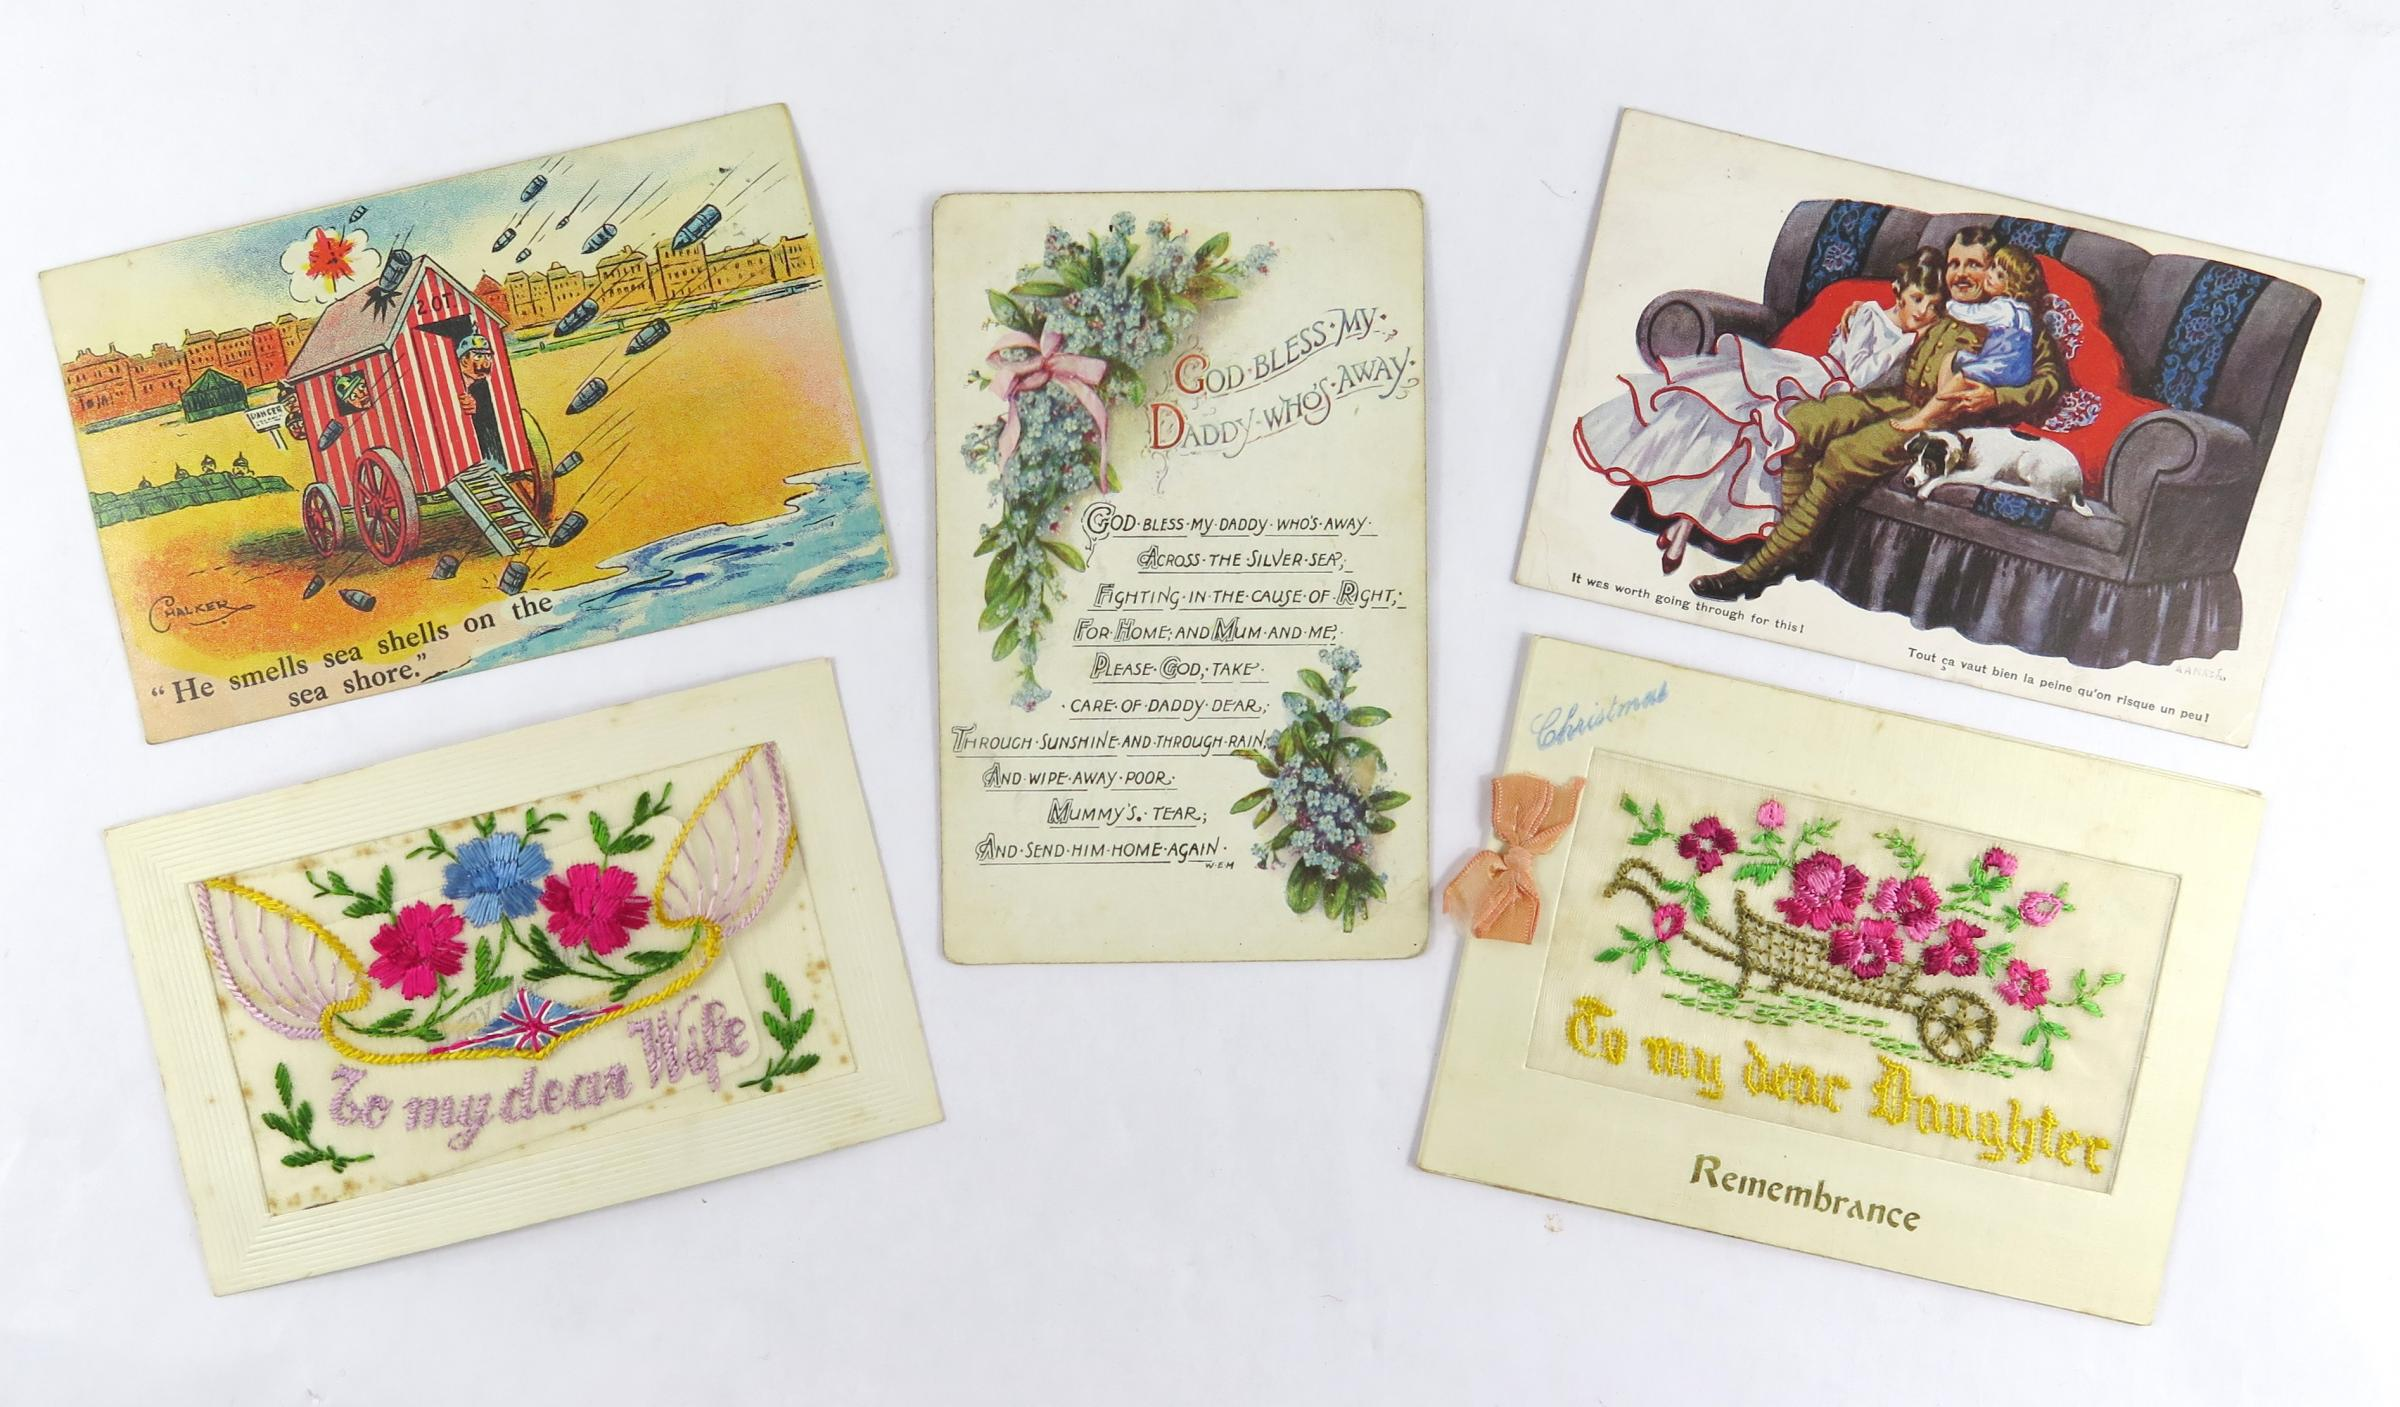 The collection of 600 postcards is expected to fetch between £300-500.